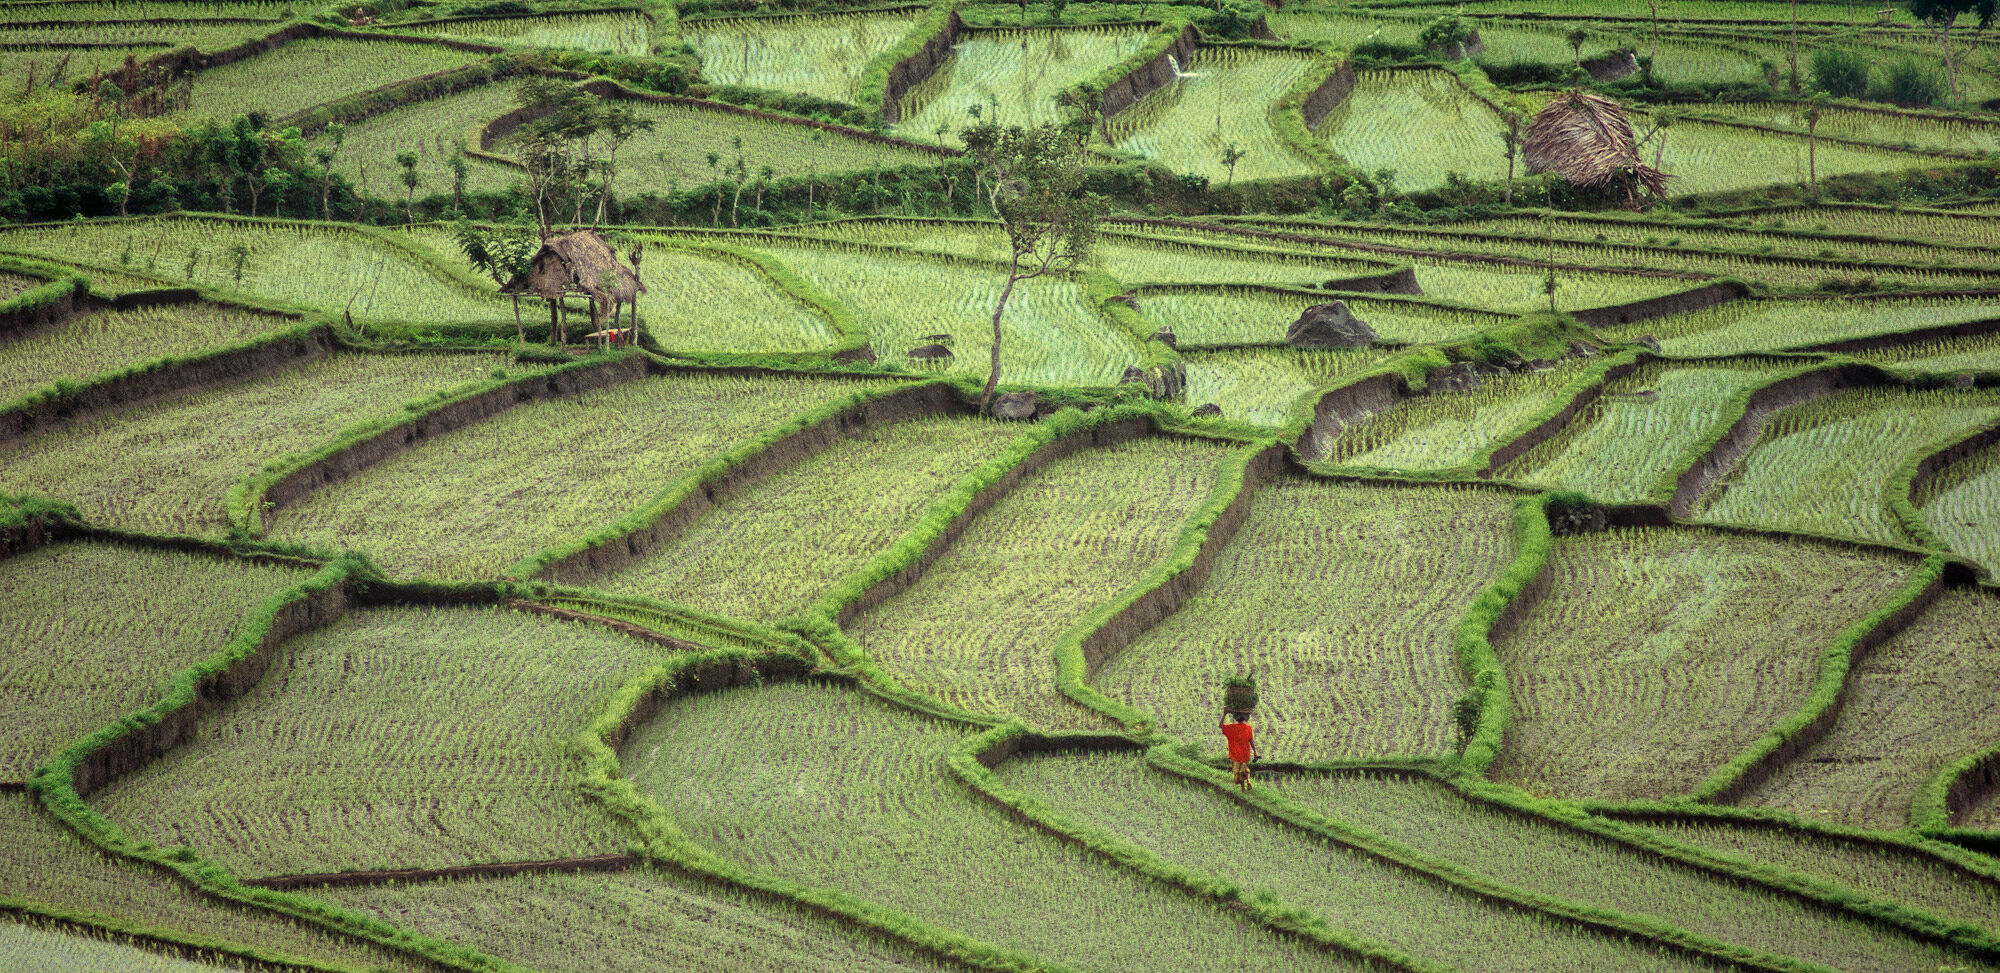 I have had the good fortune to see the rice terraces of Nepal and the onion field terraces of the Dieng Plateau. It was...